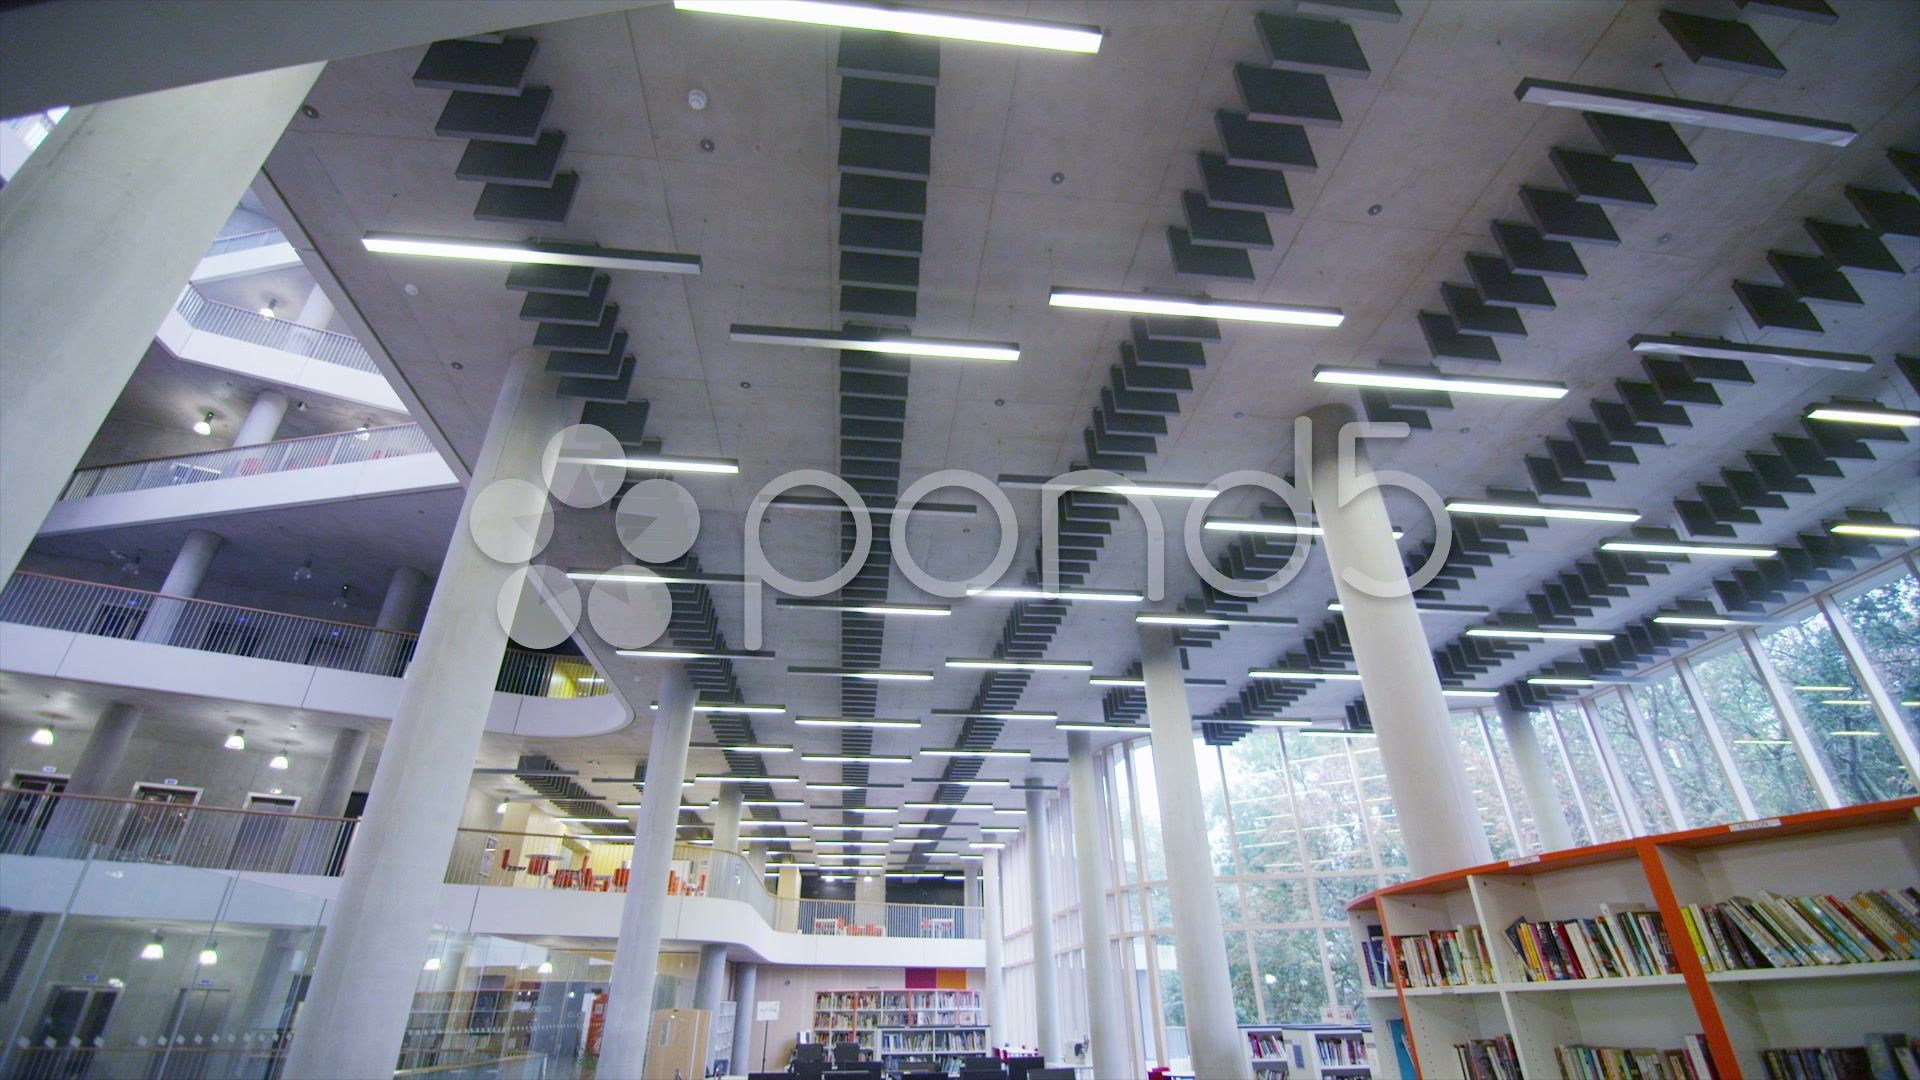 Interior view of the library in a large modern university